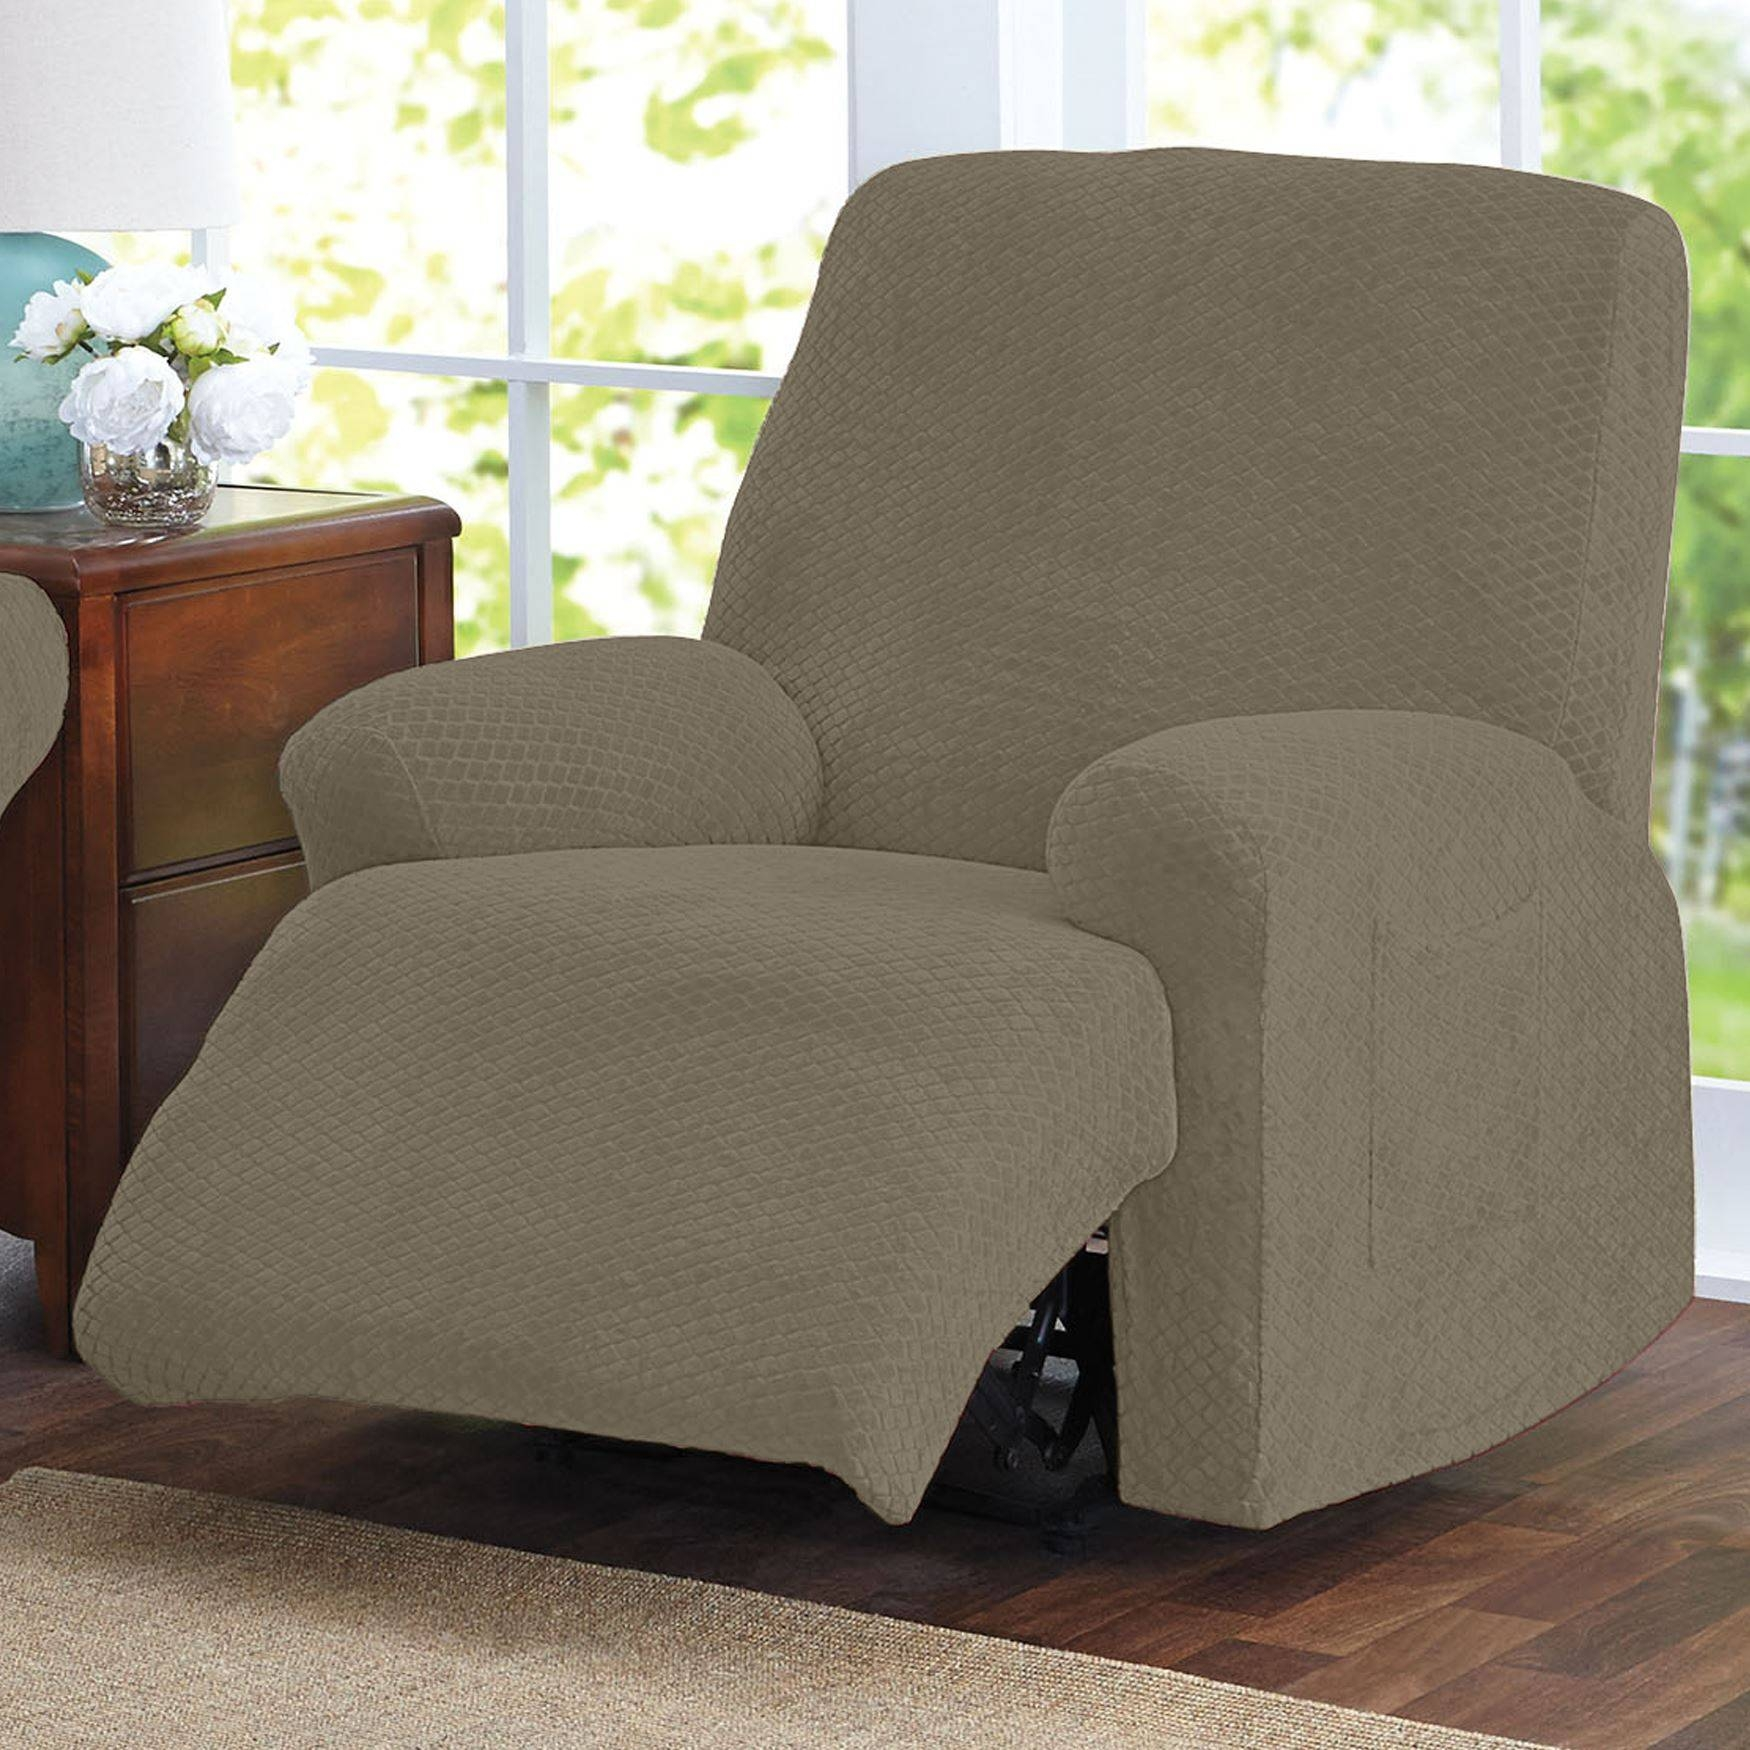 Brylanehome® Studio Stretch Diamond Recliner Slipcover | Recliner With Regard To Stretch Covers For Recliners (View 4 of 15)